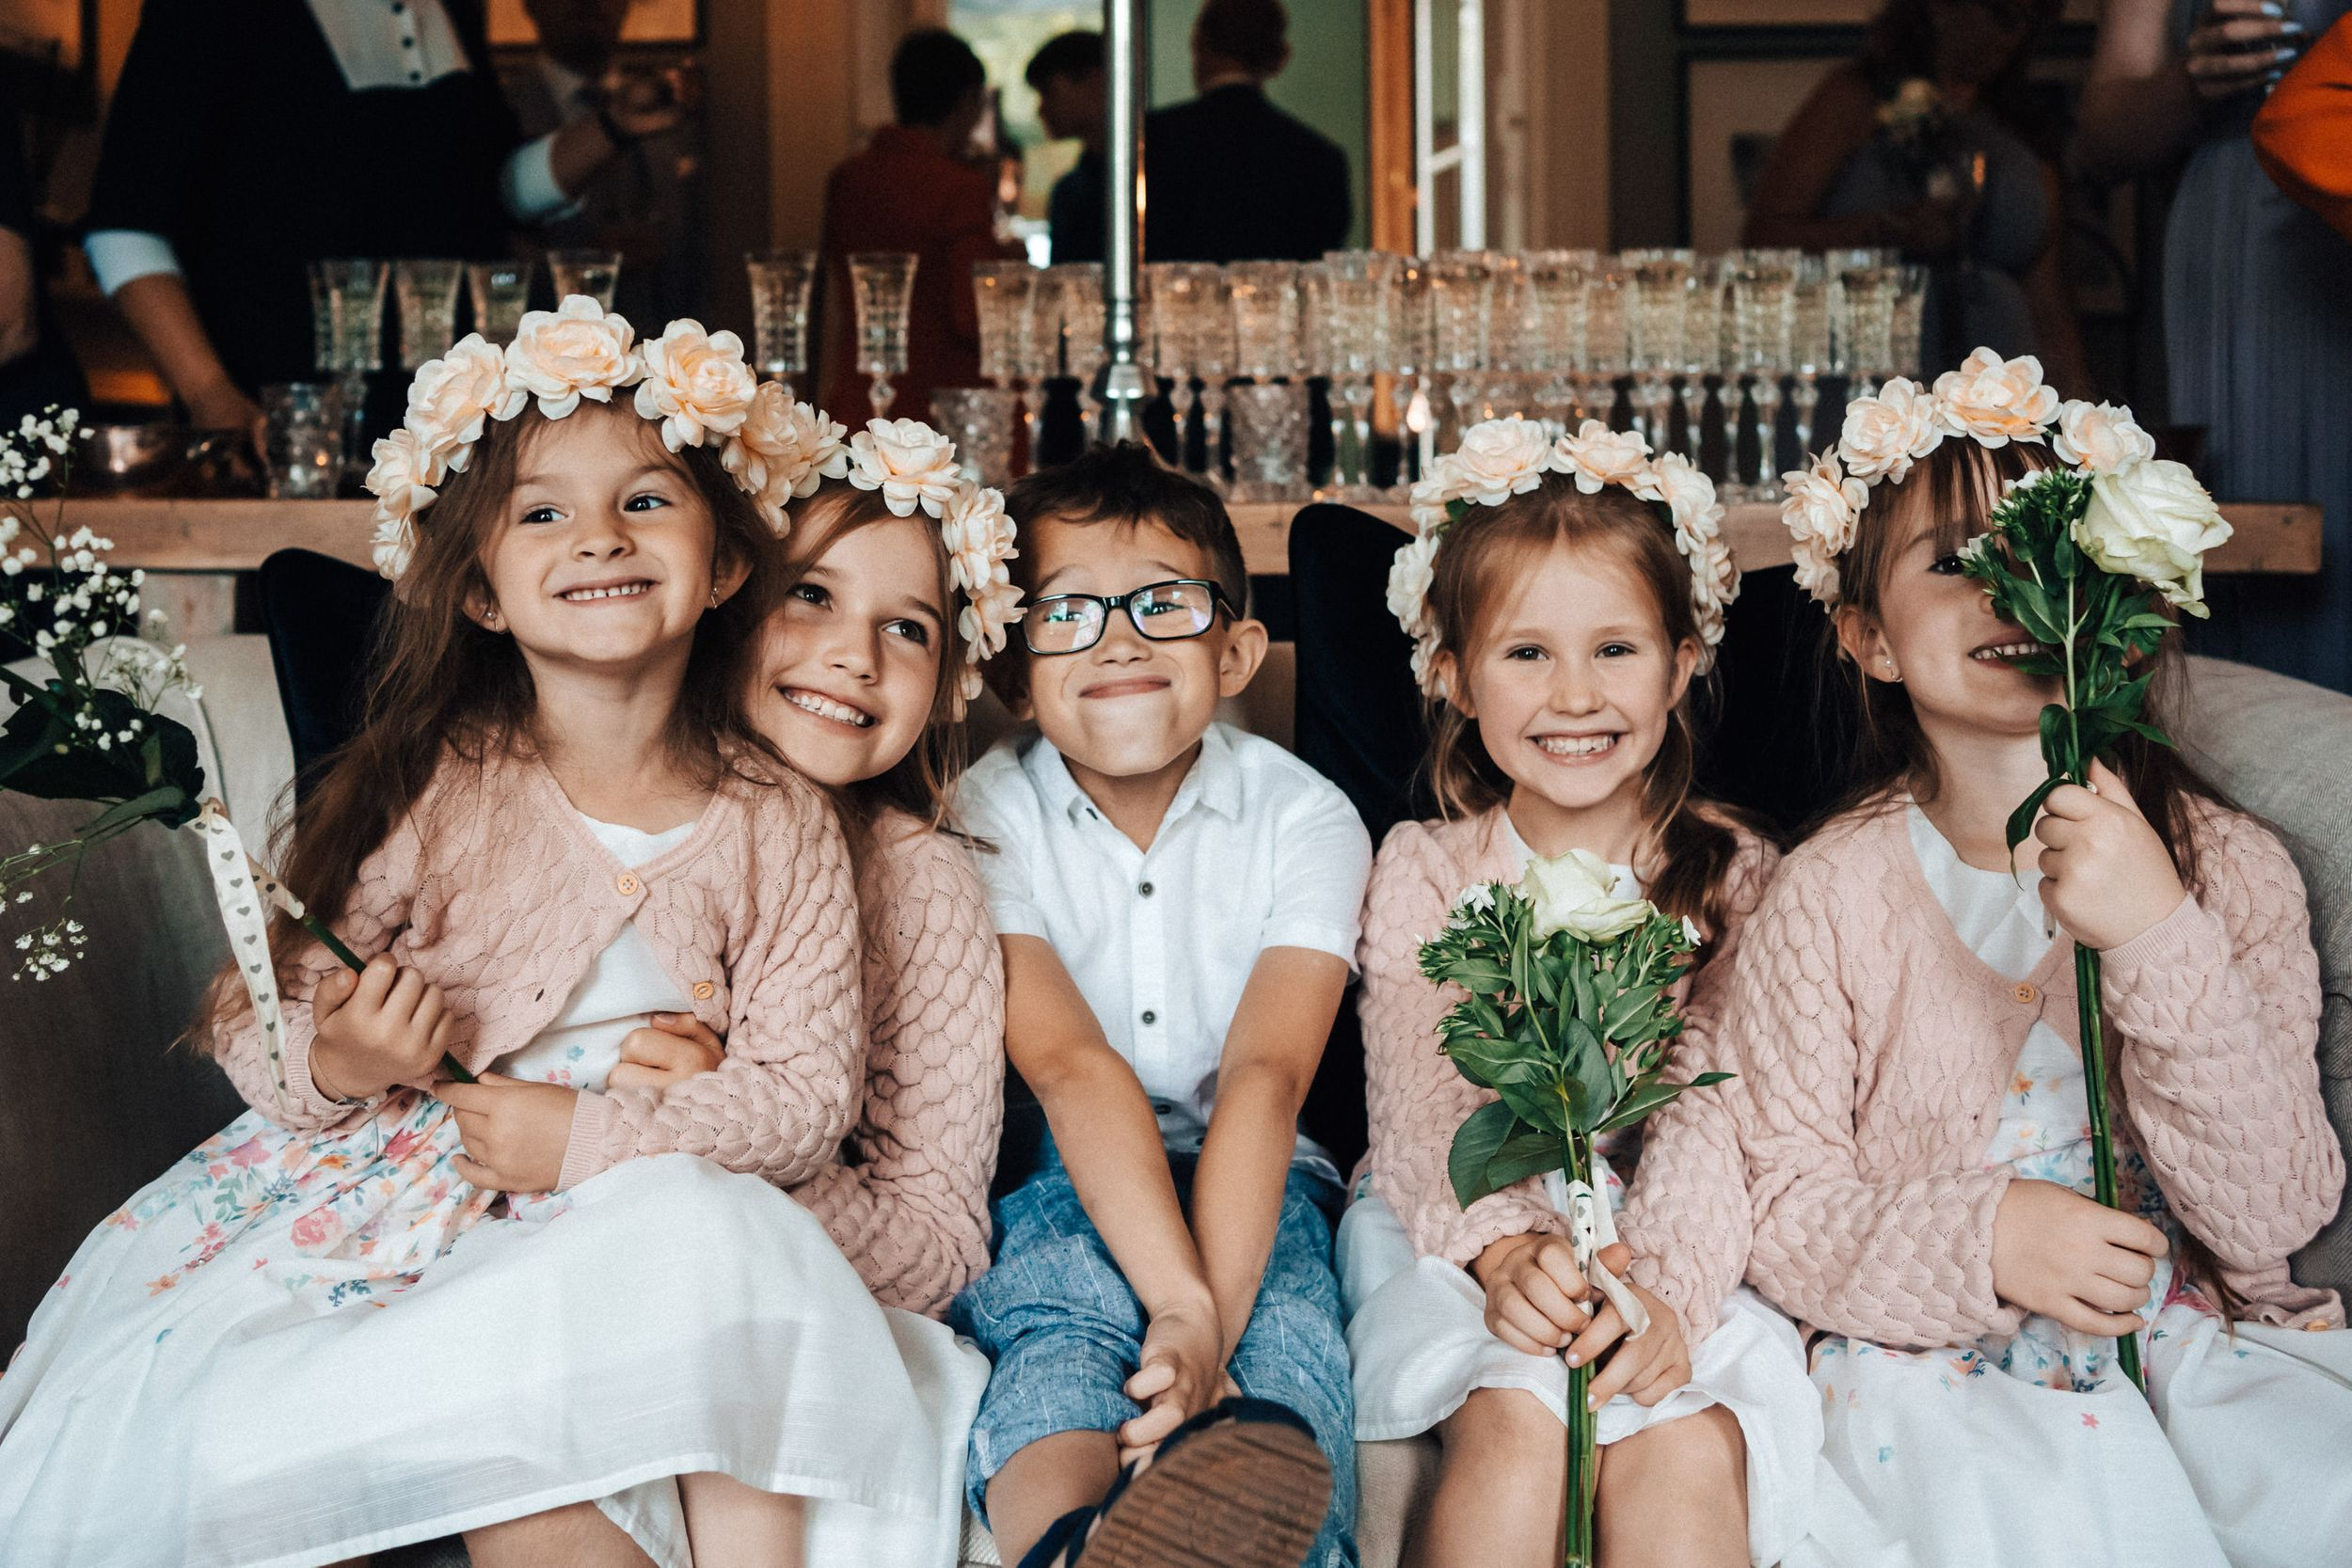 Cheeky photograph of the bridesmaid and pageboy on the sofa pageboys sticking his tongue out